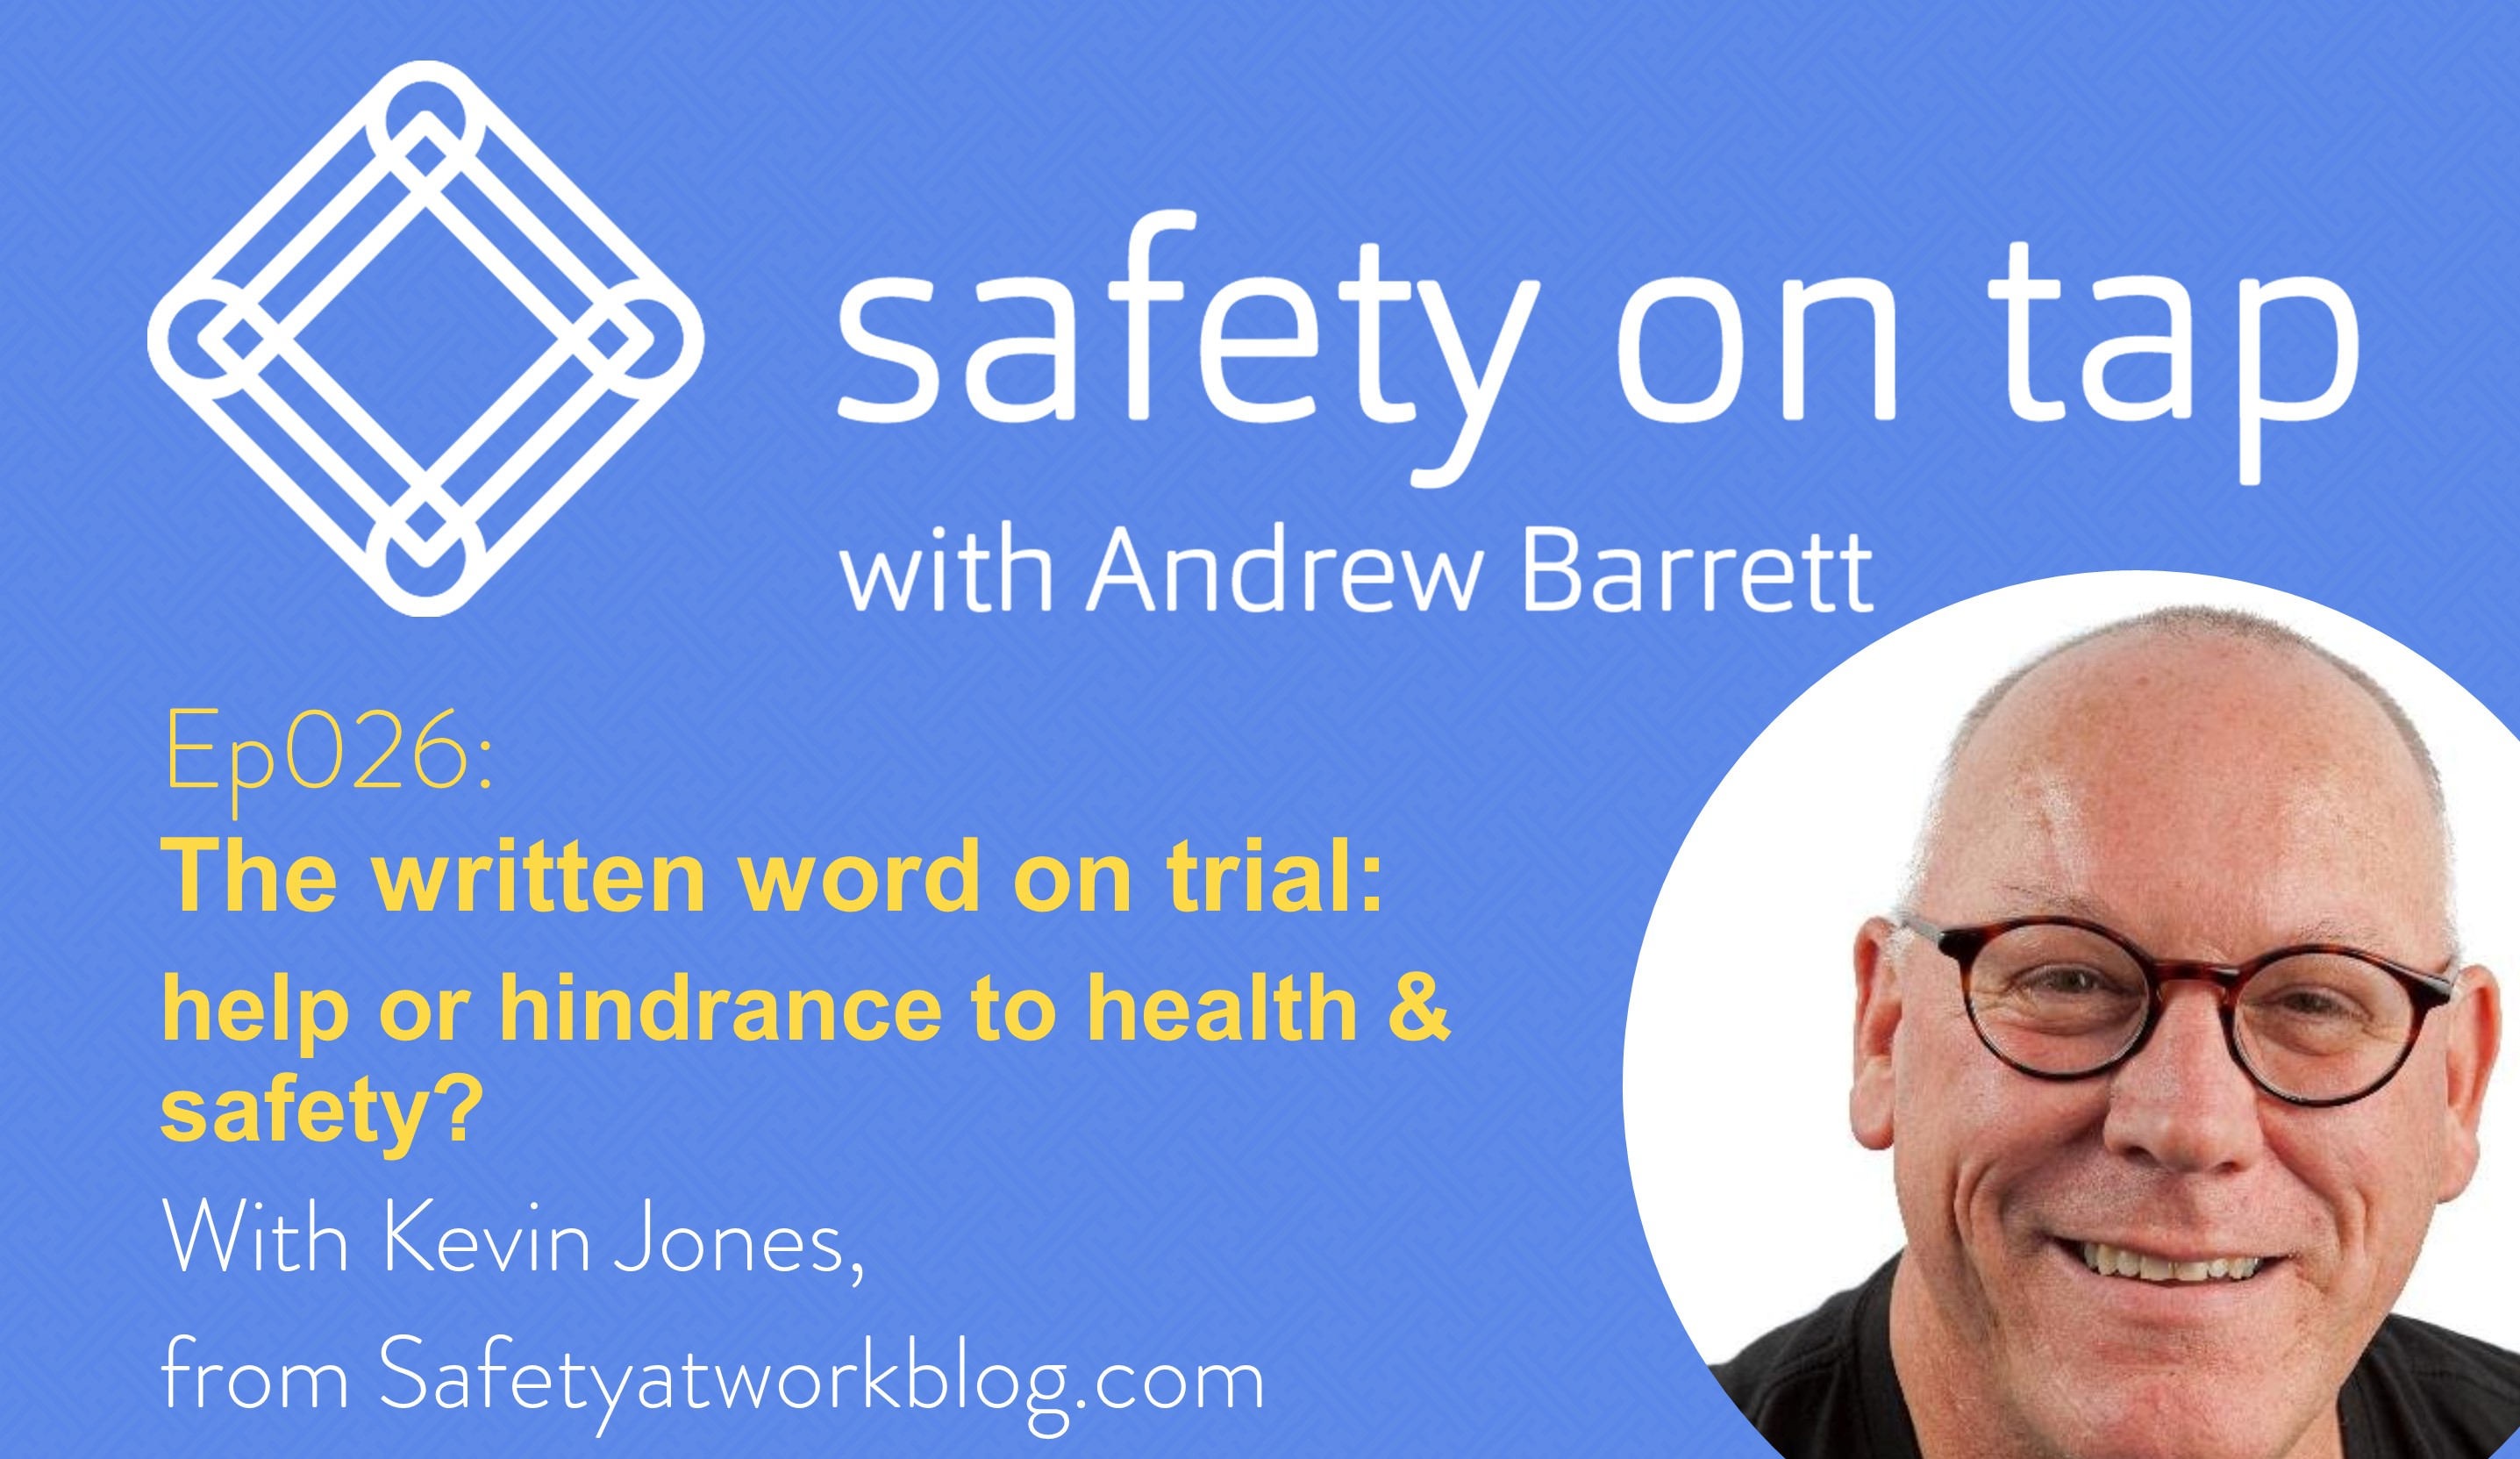 Ep026: The written word on trial: help or hindrance to health and safety?